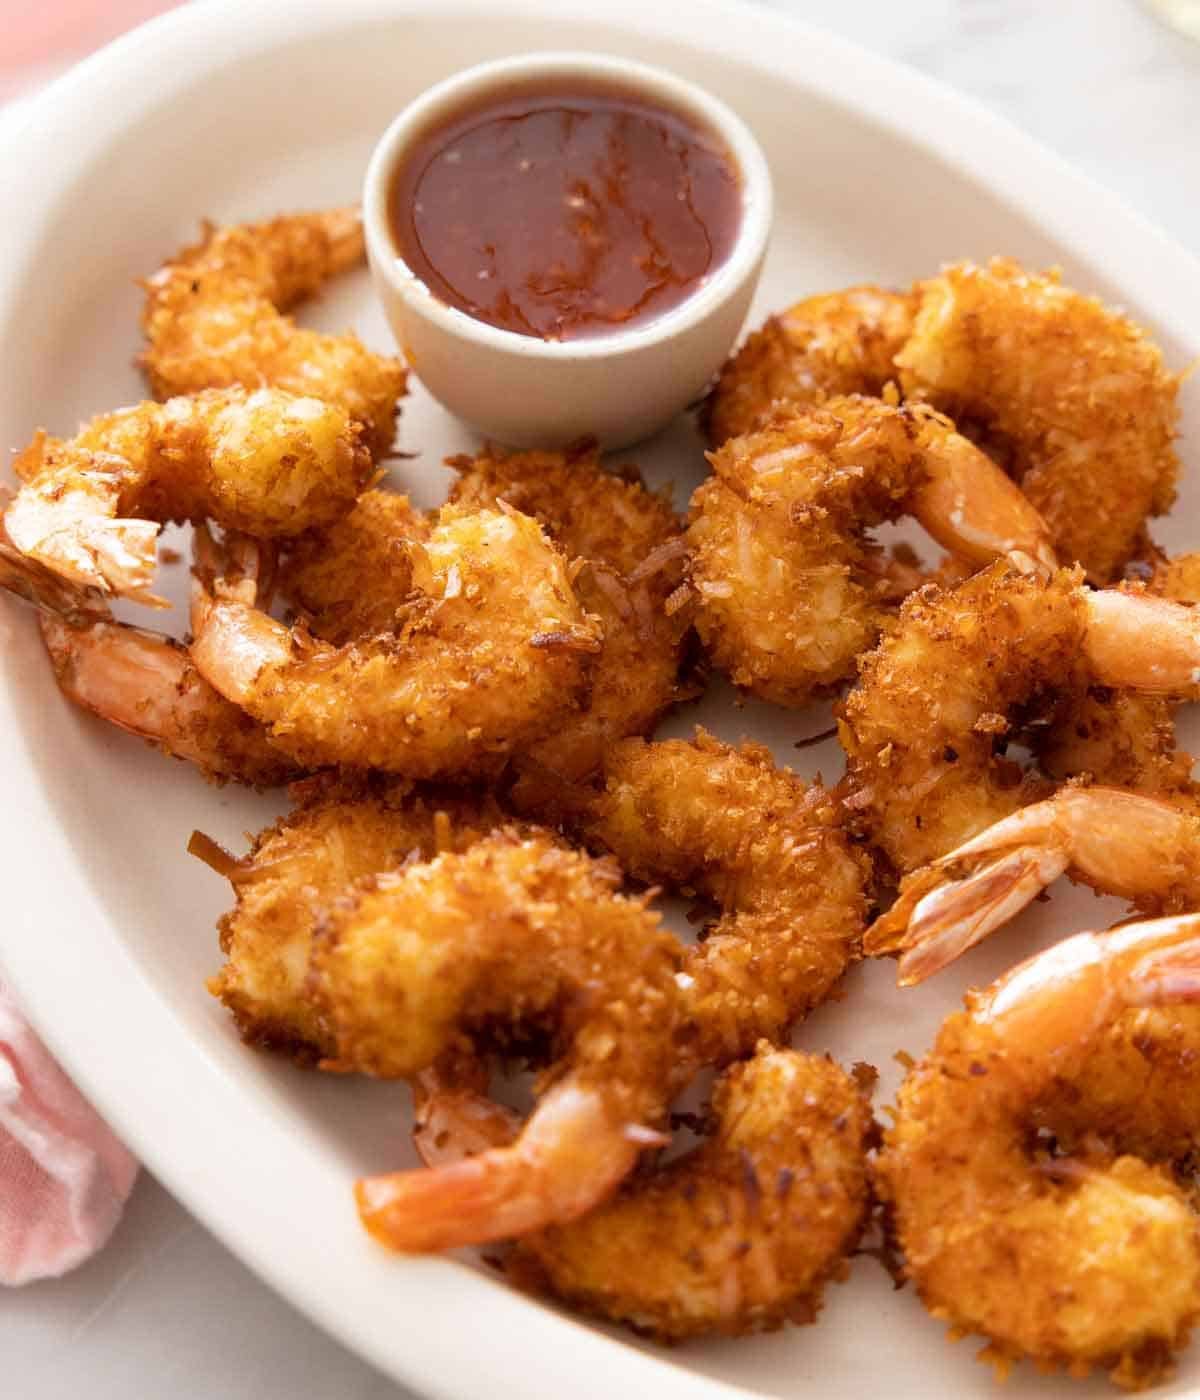 An oval platter with coconut shrimp and a dipping bowl of sauce.